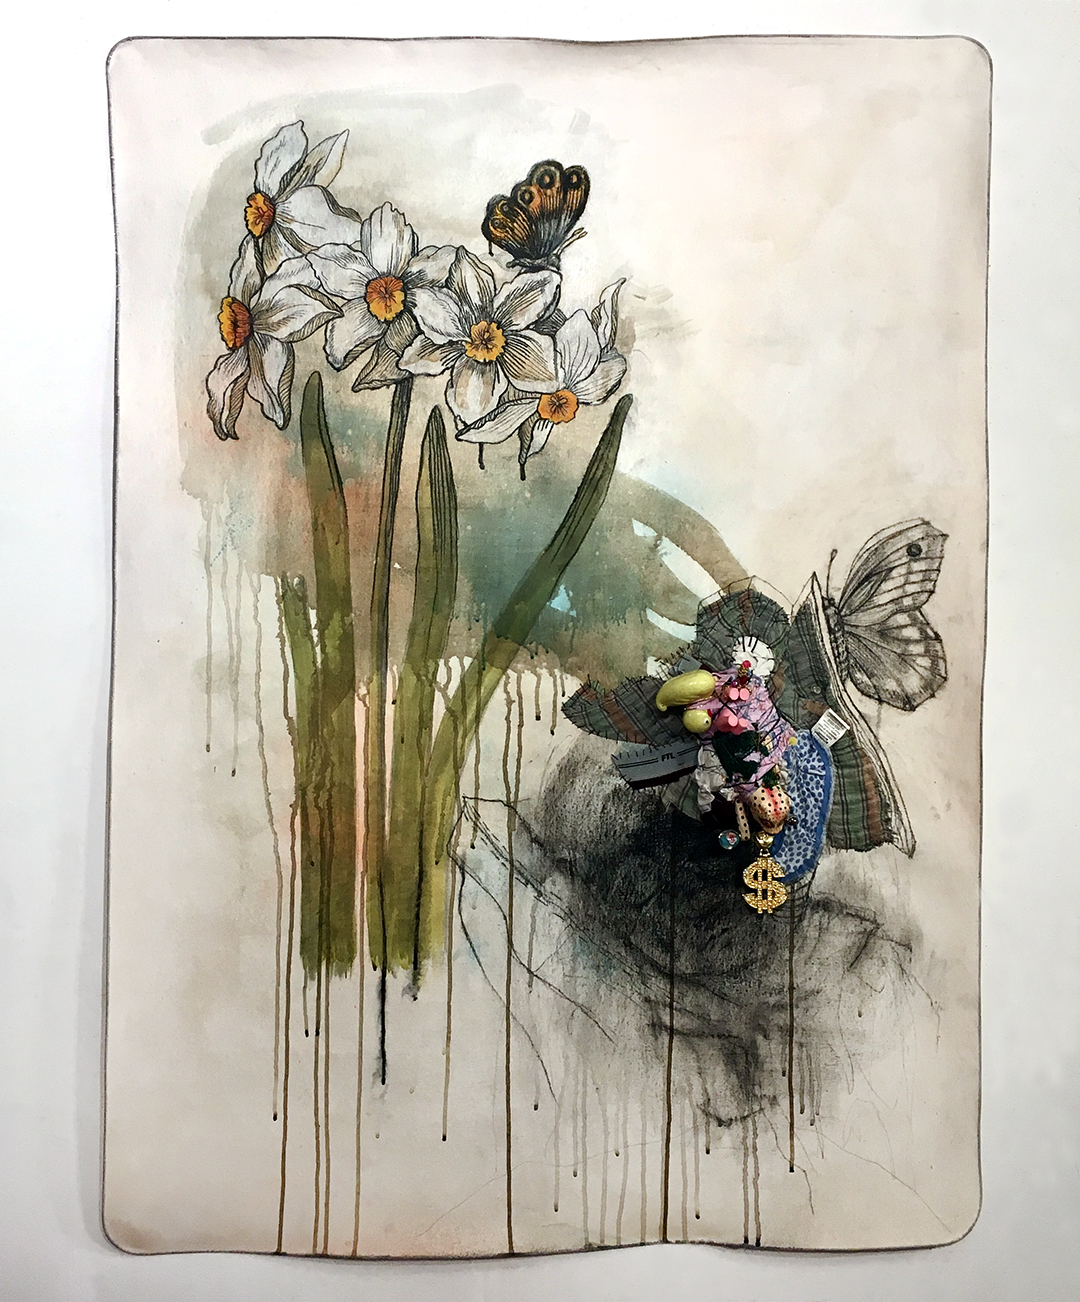 """Water Is Life , 2018, 40"""" x 60"""", canvas, steel cable, gouache, charcoal, fabric, jewelry, toys, maternity underwear, shirts, thread, cord,wire, beads."""